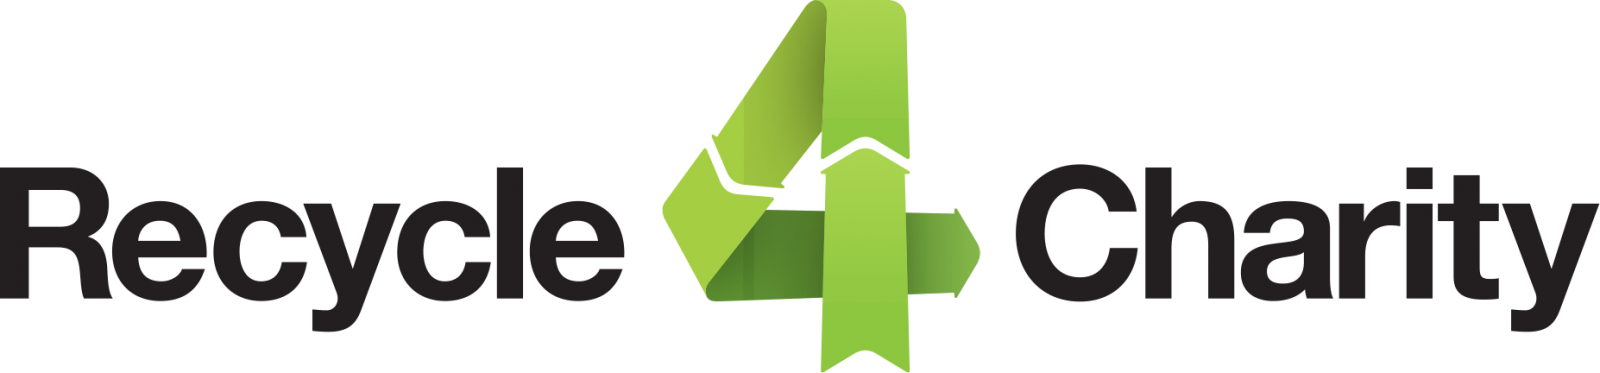 Recycle 4 Charity logo